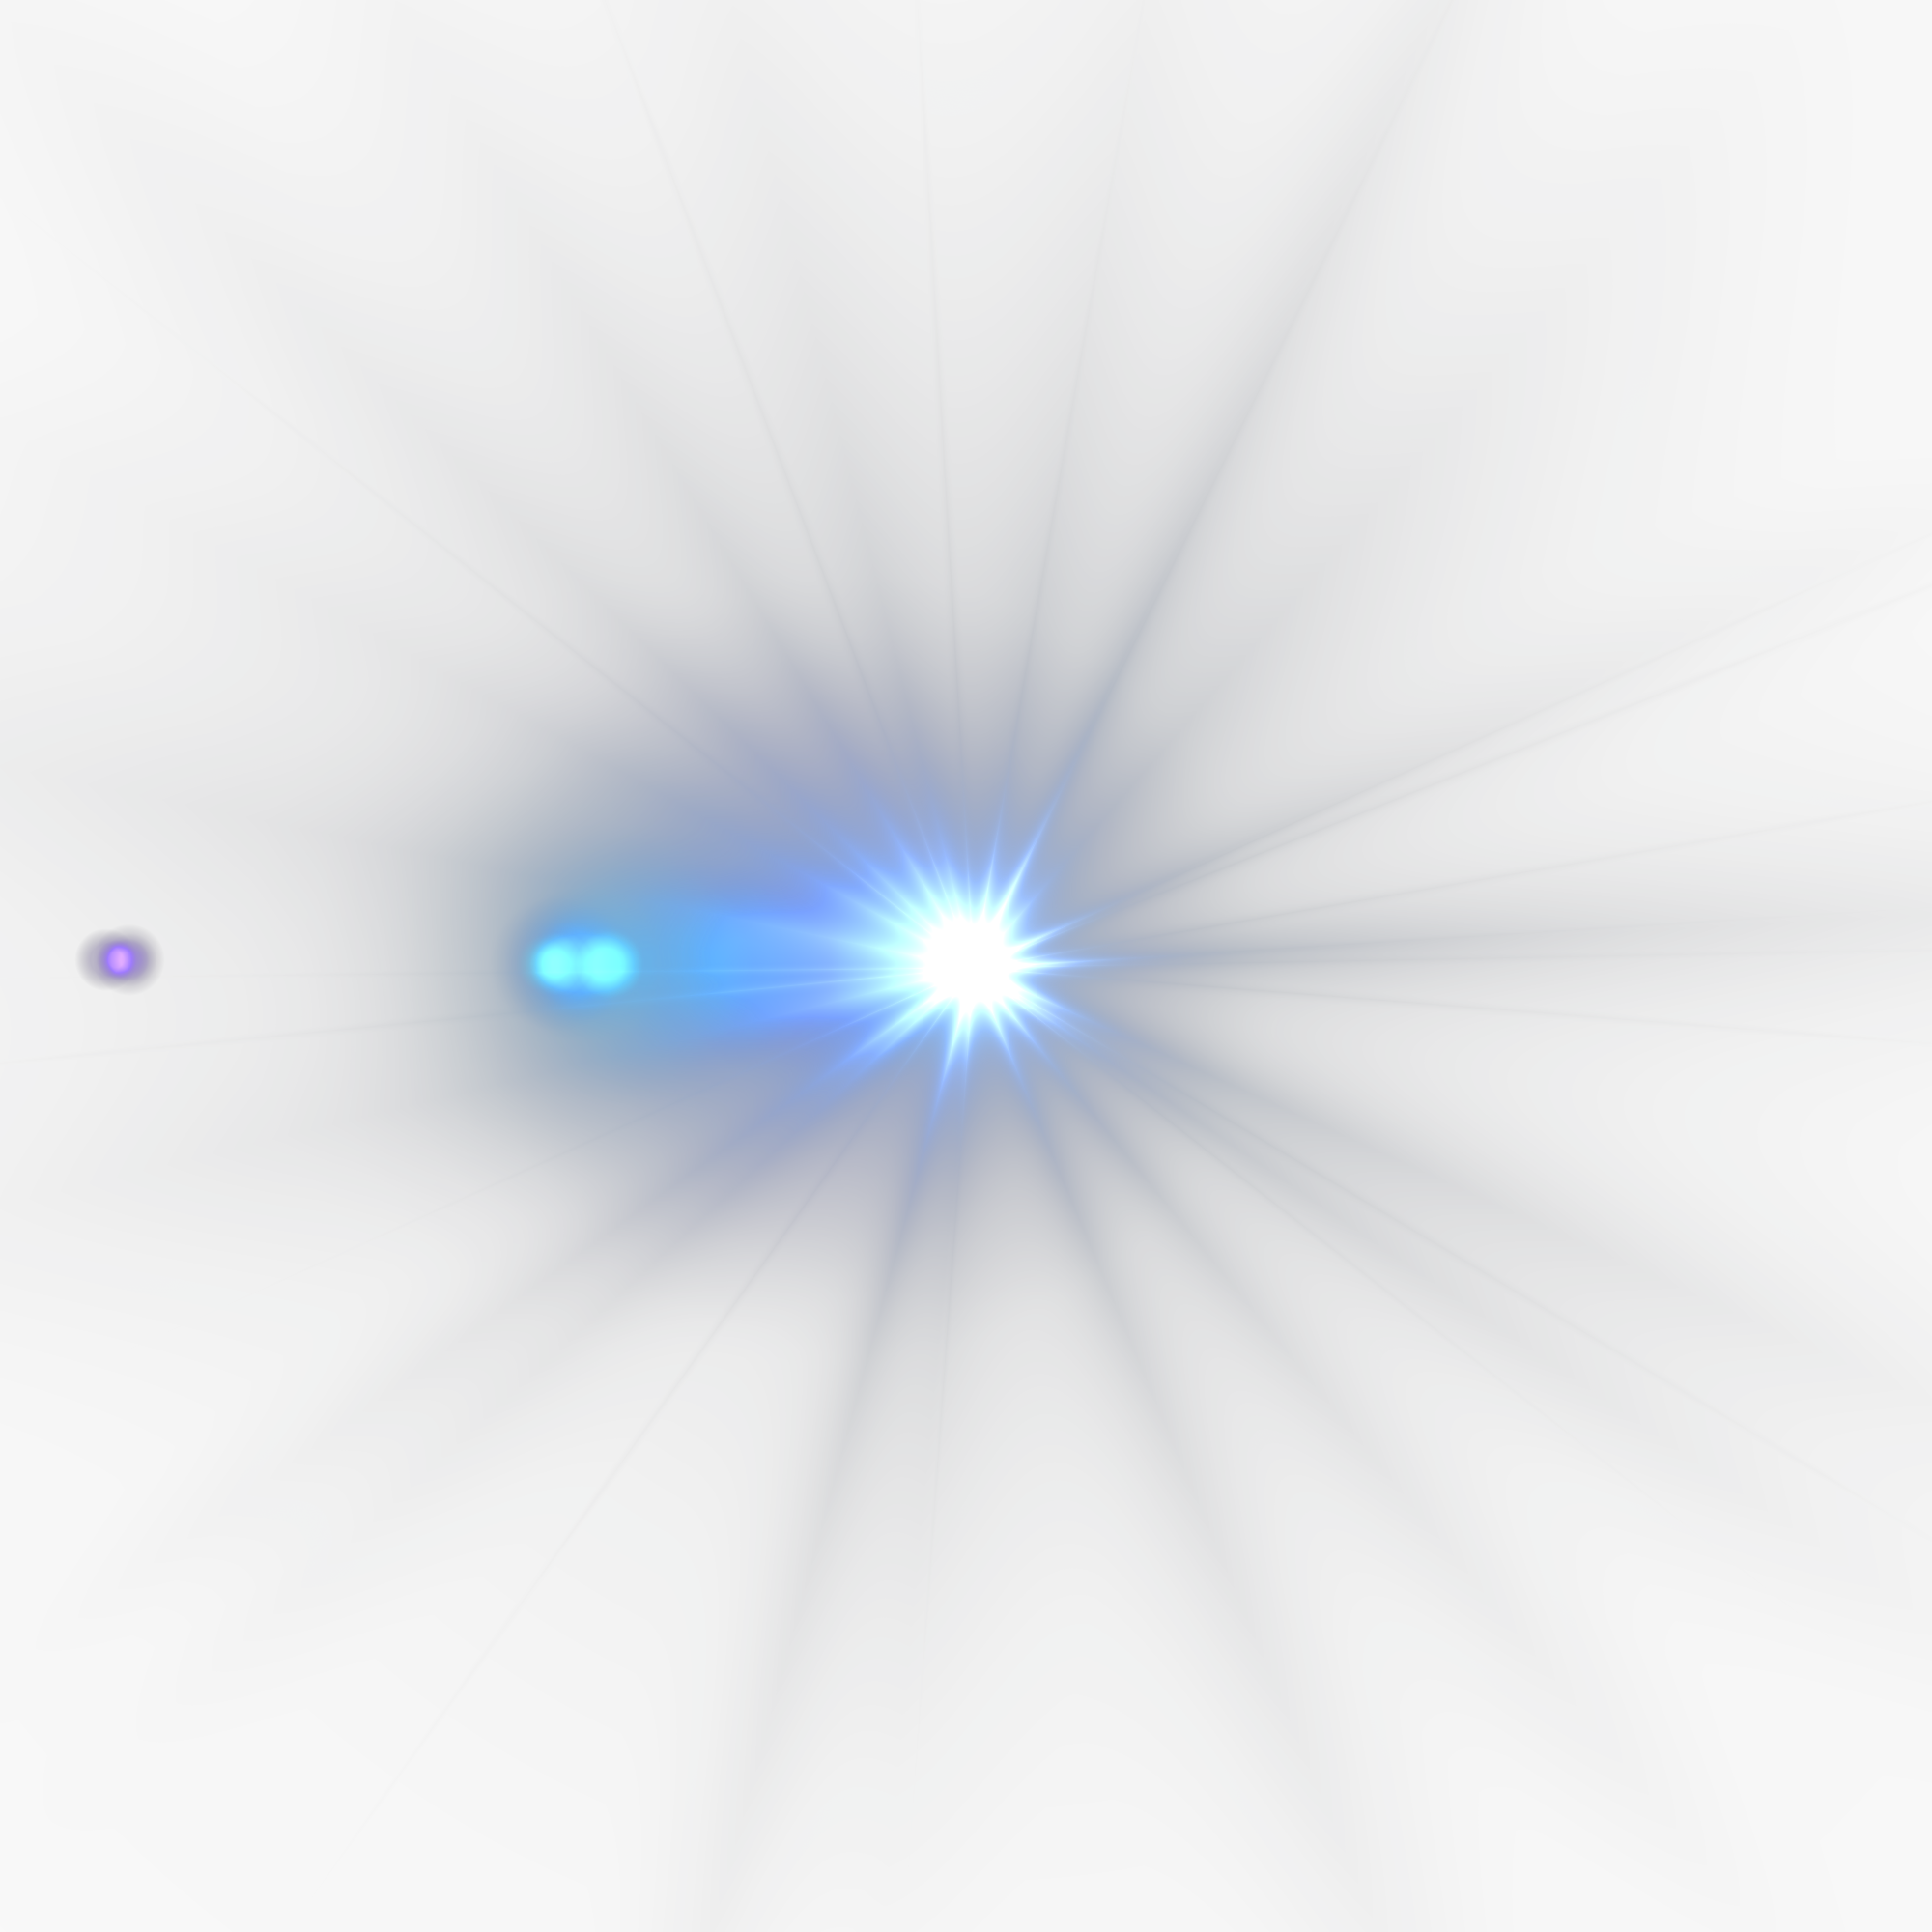 Sunlight flare png. Light lens transparency and